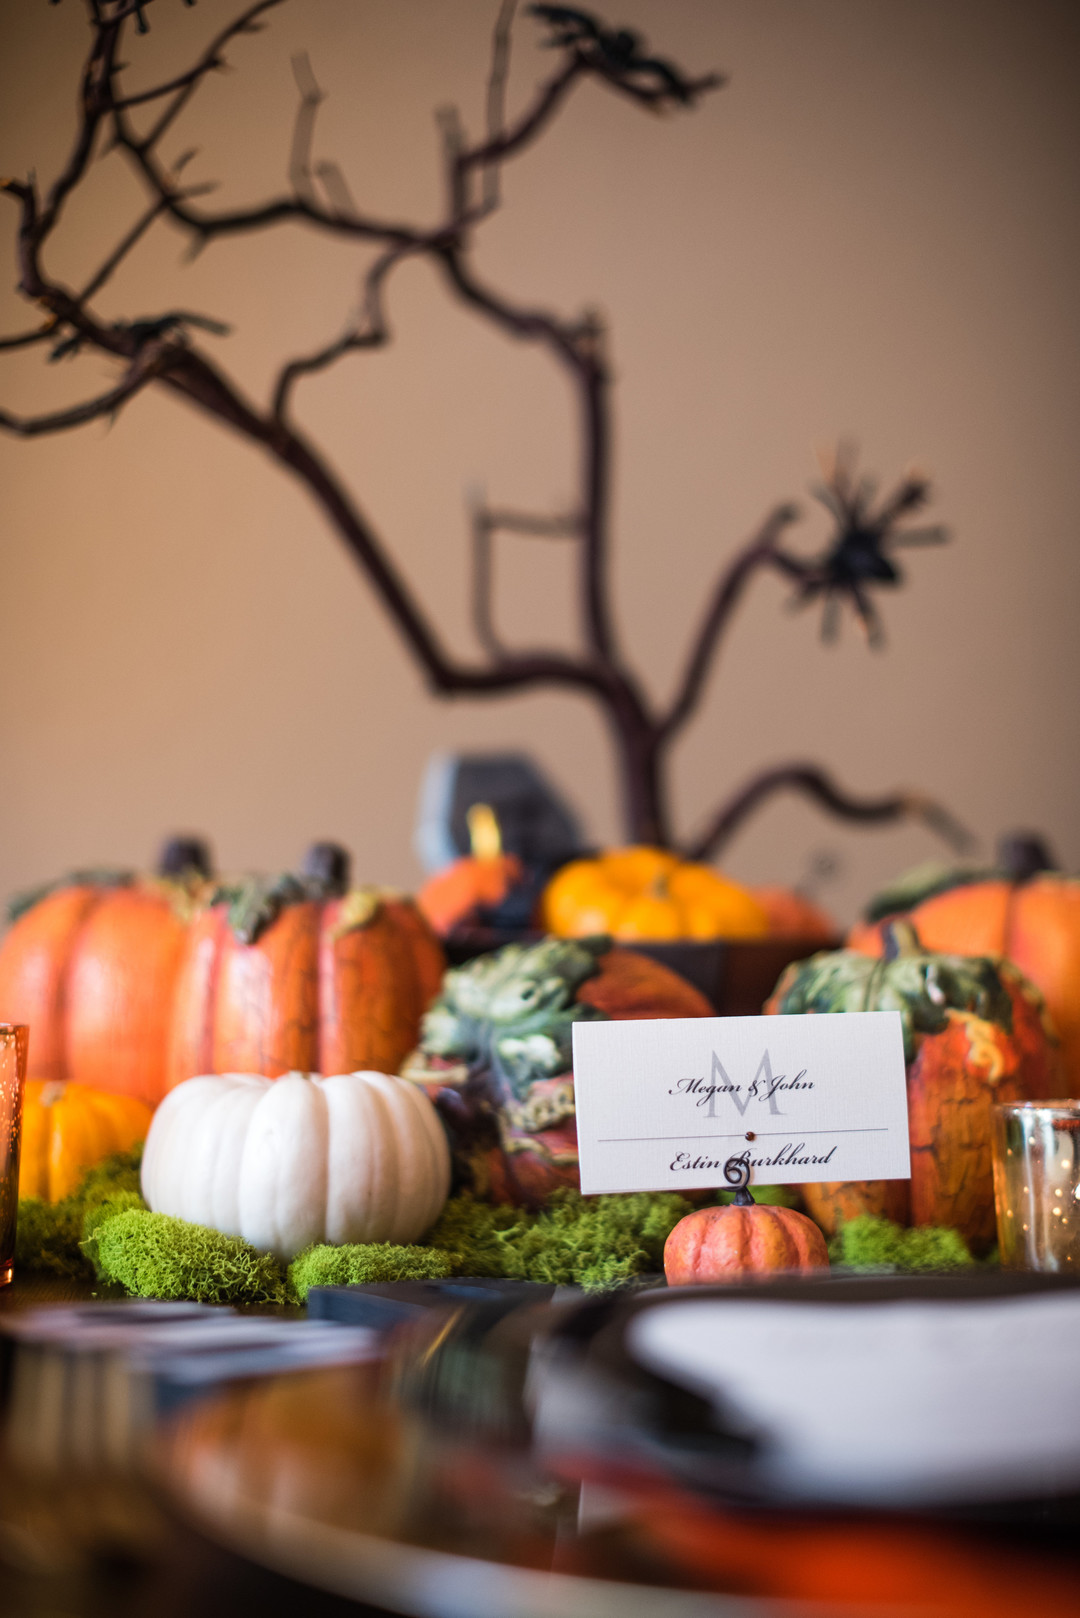 Looking for fun and spooky Halloween Tablescape Ideas and Centerpieces? This Halloween table setting would be perfect for a dinner party or an everyday display. #Halloween #HalloweenDecor #Tablescape #Centerpiece #HalloweenParty #Parties365